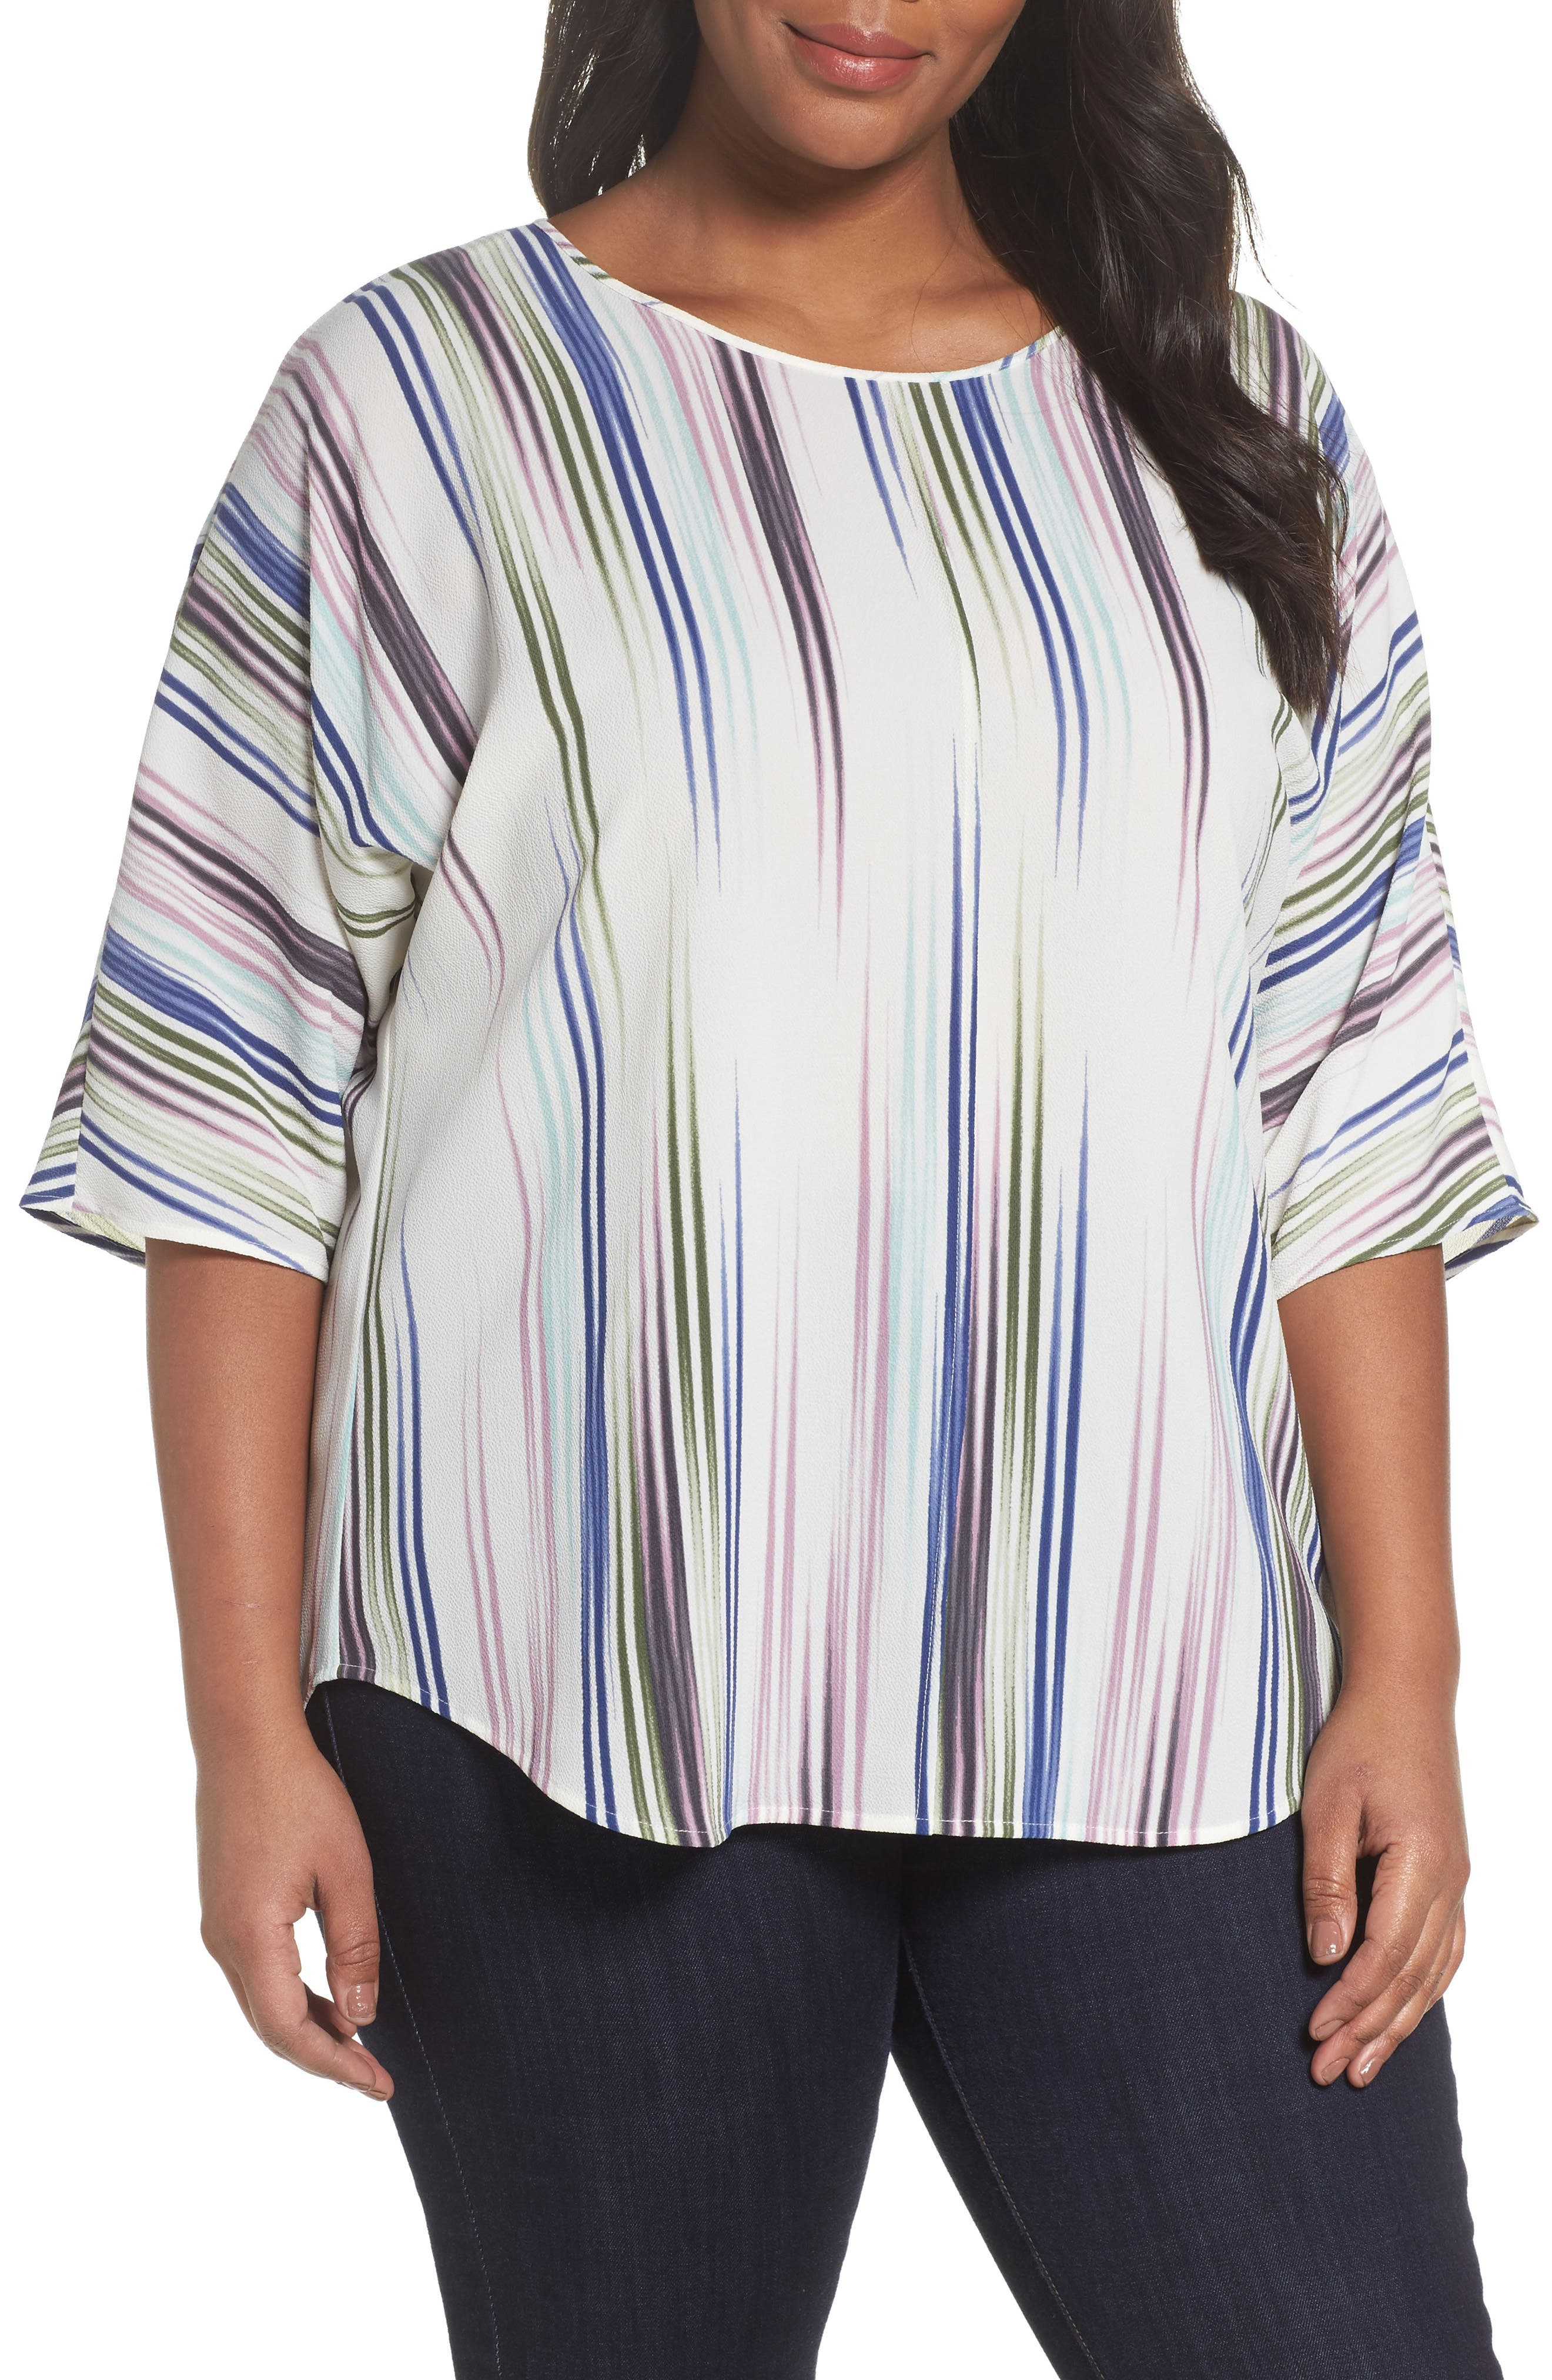 Vince Camuto Elbow Sleeve Colorful Peaks Blouse (Plus Size)